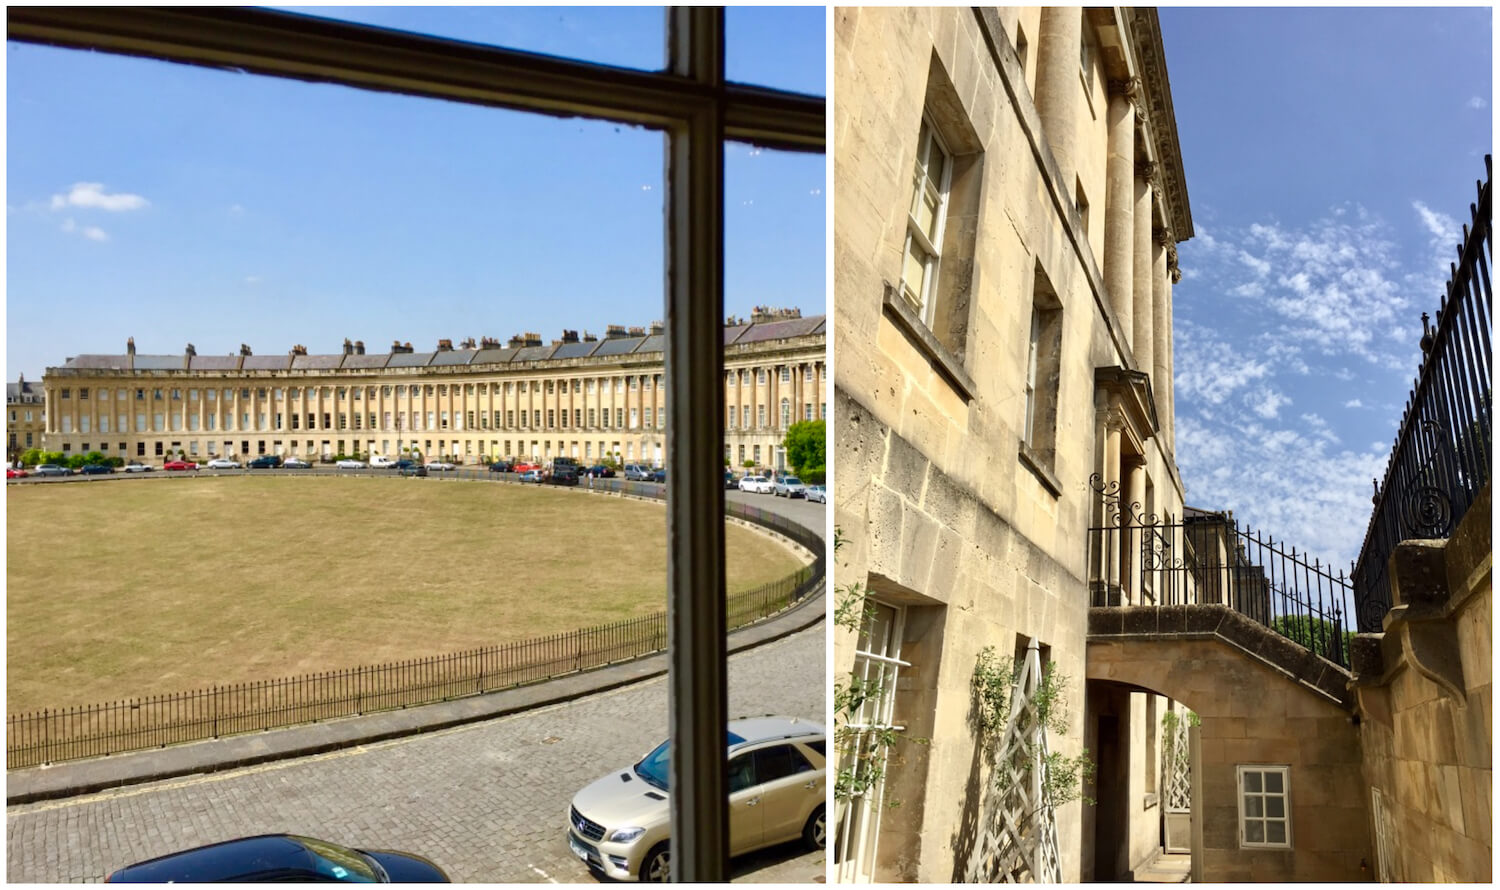 Bath, Somerset - No. 1 Royal Crescent